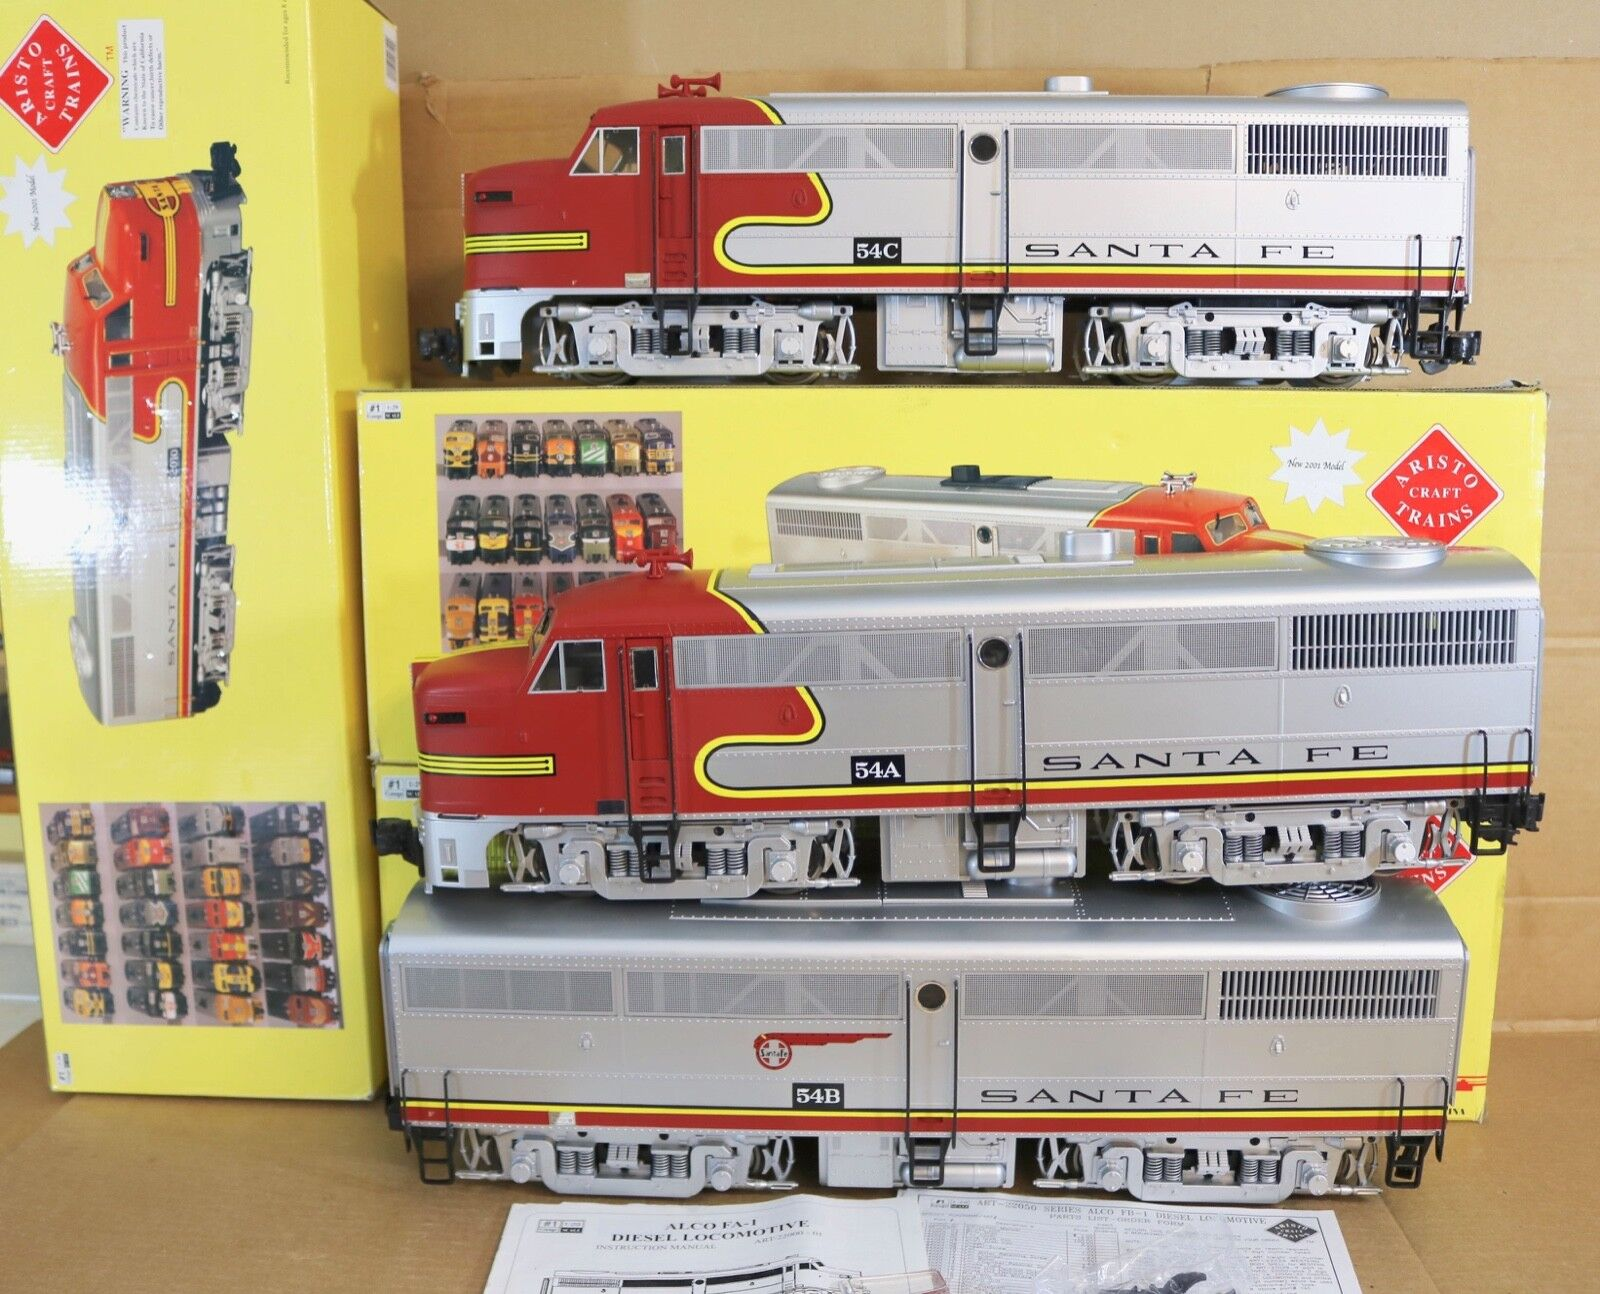 ARISTO-CRAFT 22310-3 G GAUGE SANTA FE AT&SF ALCO FA-1 2 & FB-1 DIESEL LOCO SET